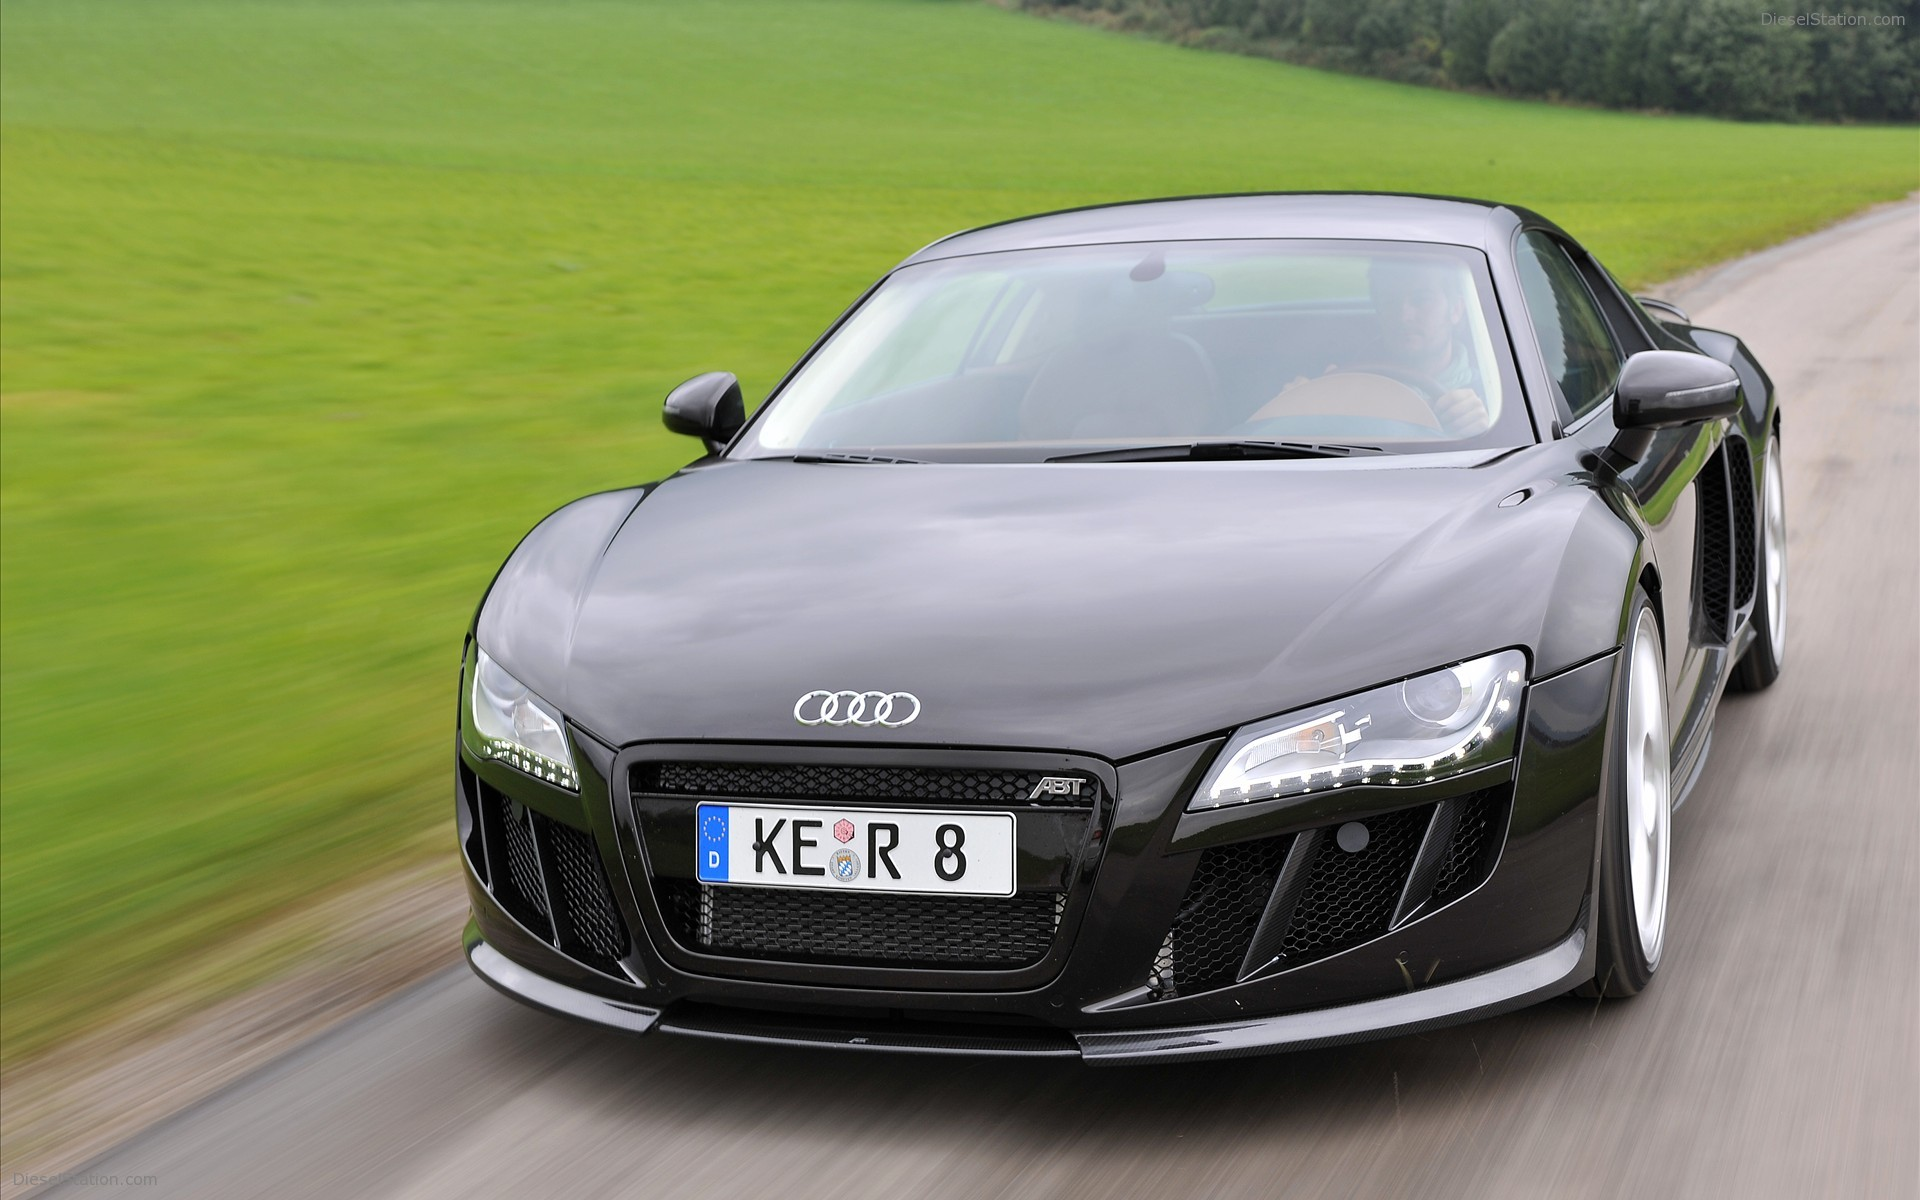 ABT Audi R8 V10 Widescreen Exotic Car Wallpapers 08 of 18 Diesel 1920x1200